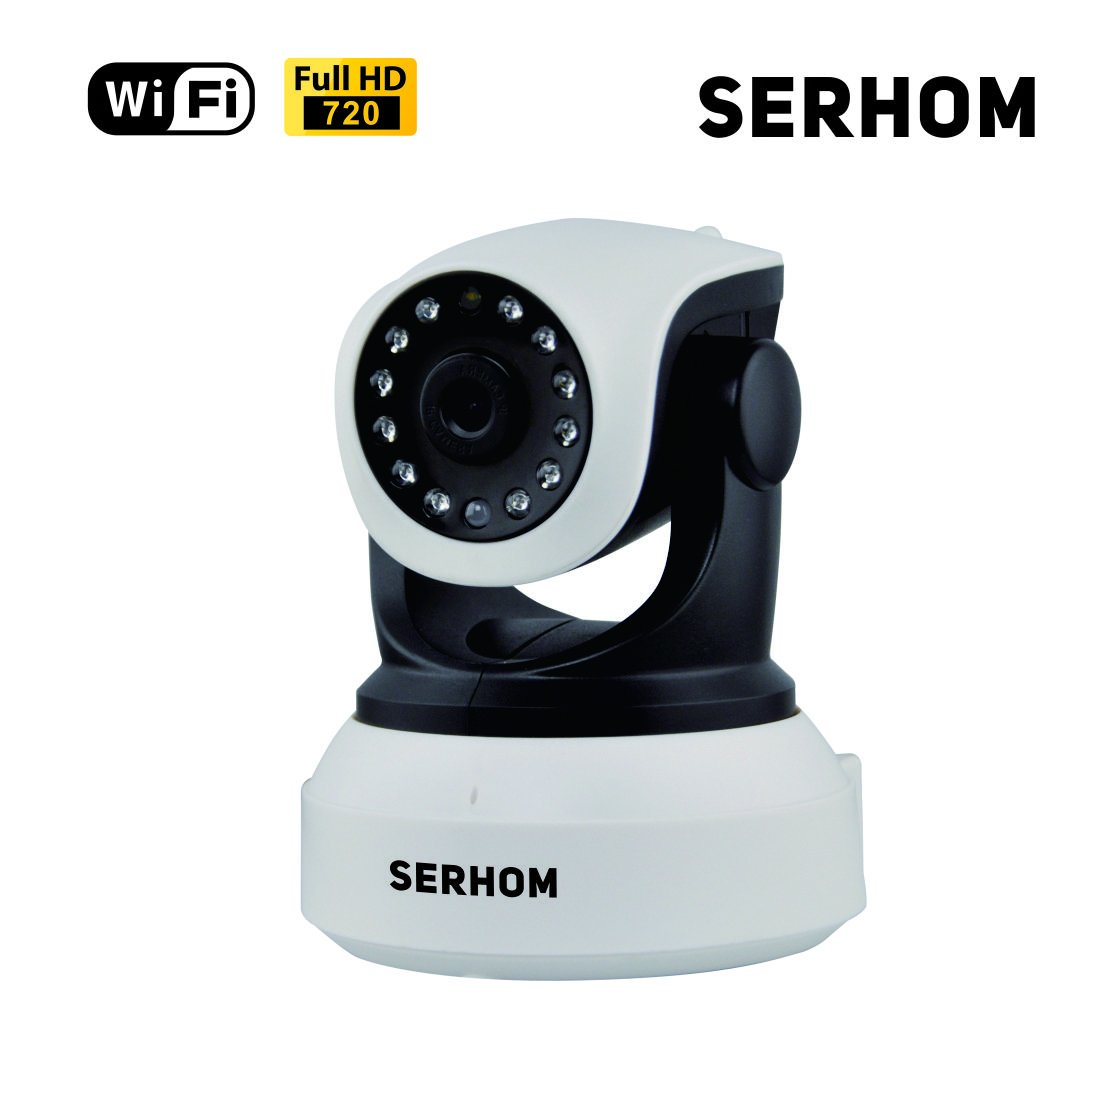 SERHOM IP Camera WIFI 720P,Wireless Surveillance Camera,Network webcam,Two way Audio Microphone inside,Onekey WIFI Setting,Pan/Tilt Movement,Night Vision Baby Pet Video Monitor